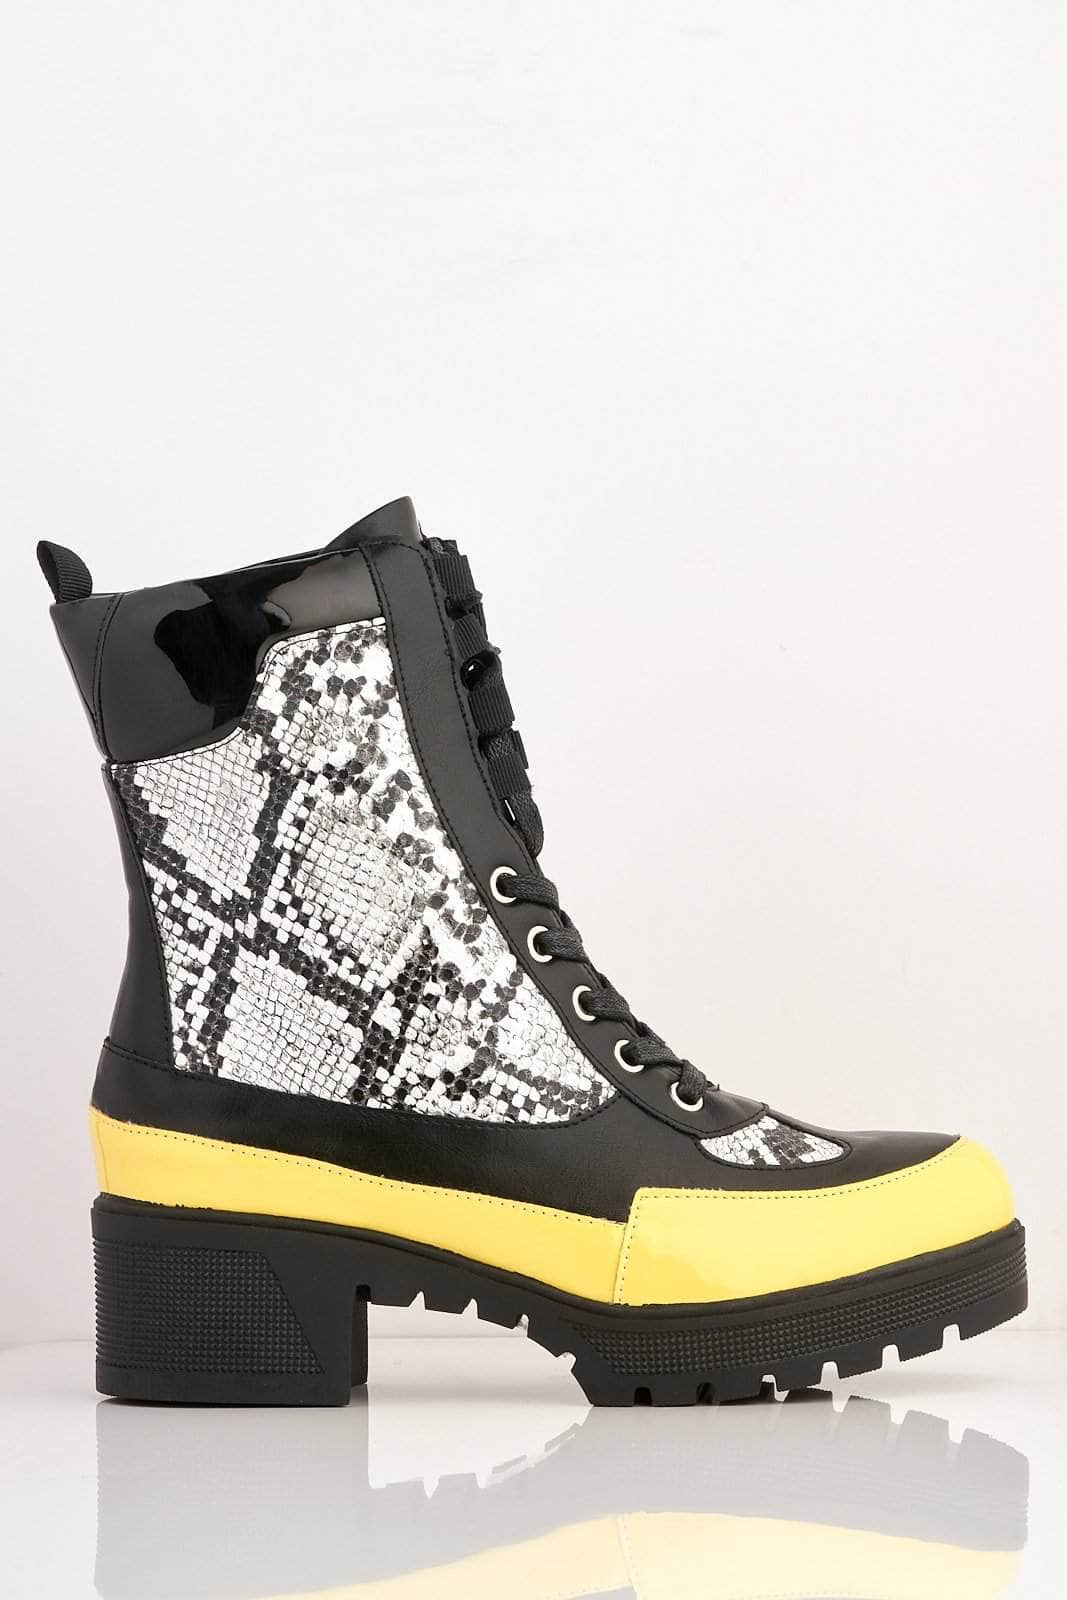 Black Patent & Yellow Contrast Snake Biker Boots